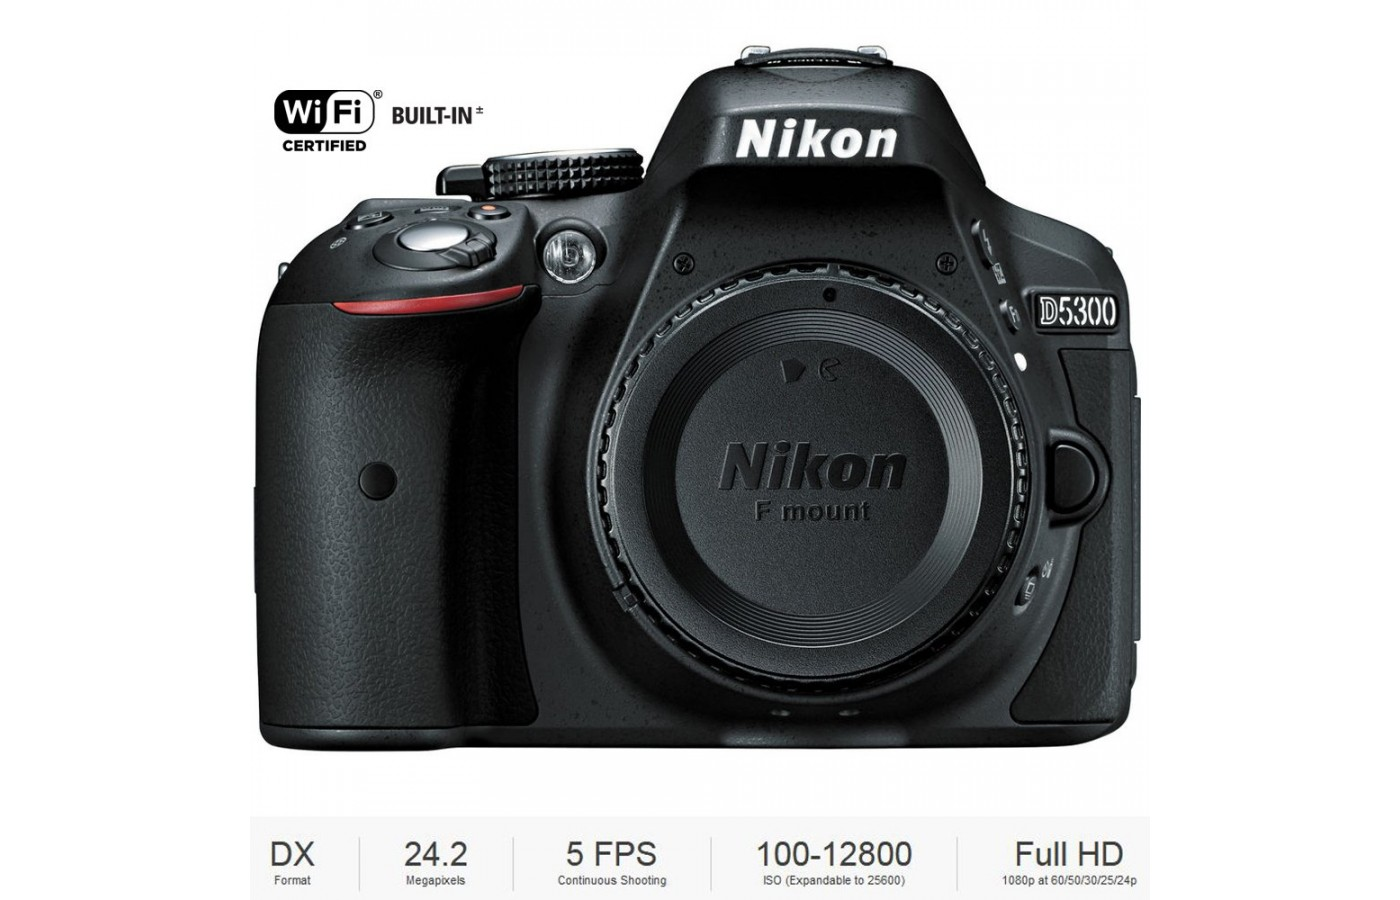 The Nikon D5300 is an advanced beginner camera.